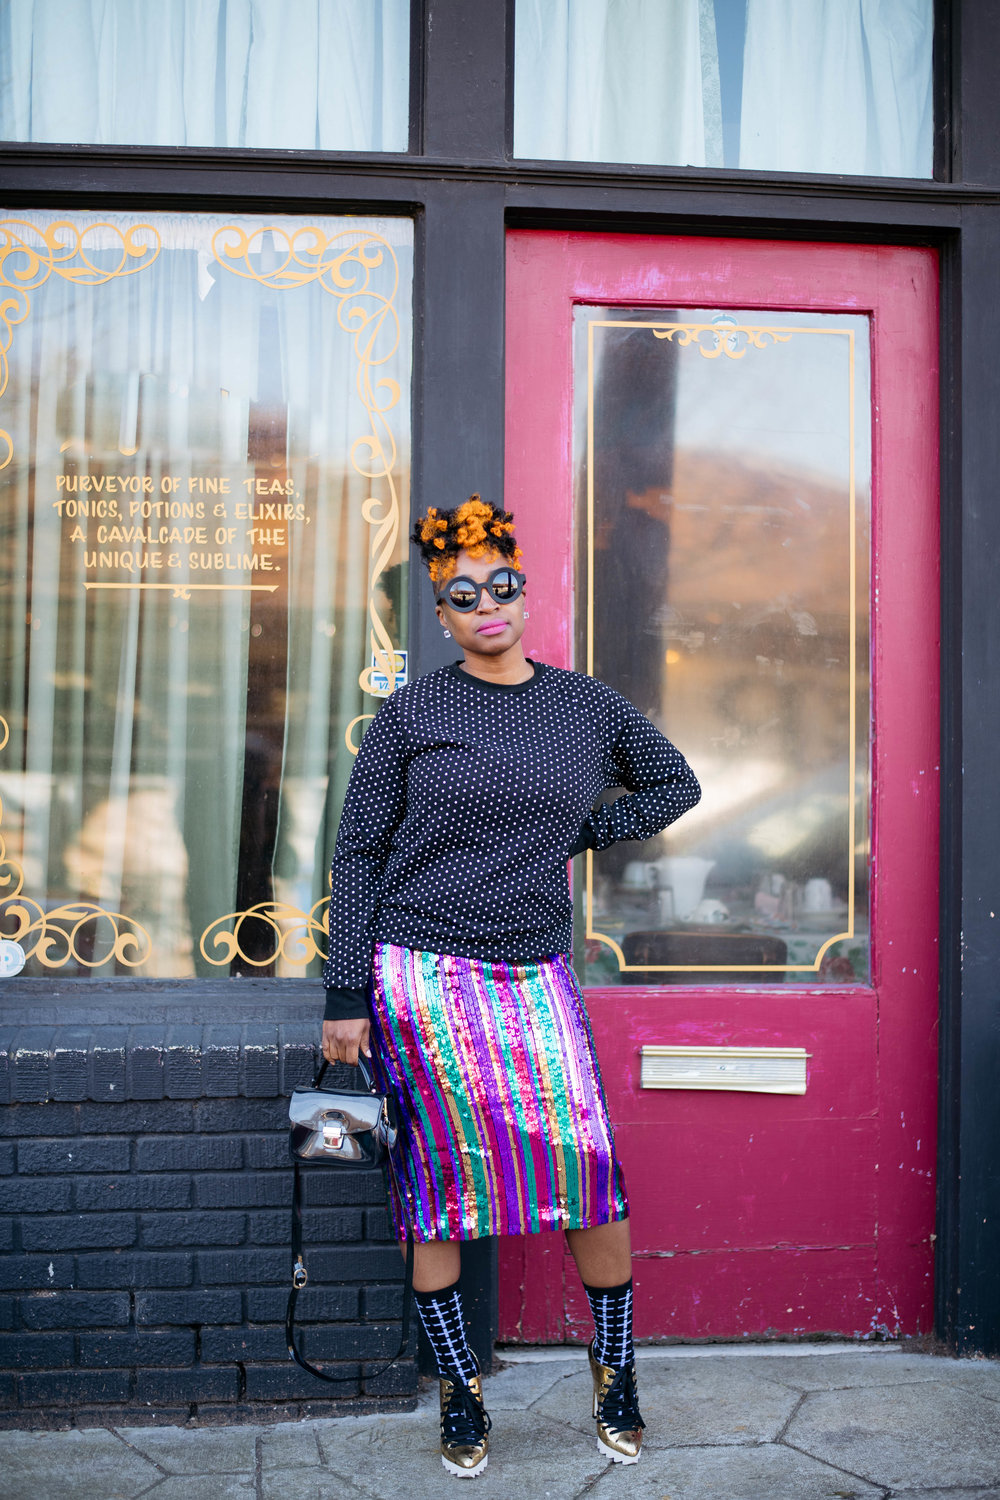 Sequin Skirt + Polka Dot Sweatshirt, Atlanta top blogger, Atlanta personal shopper